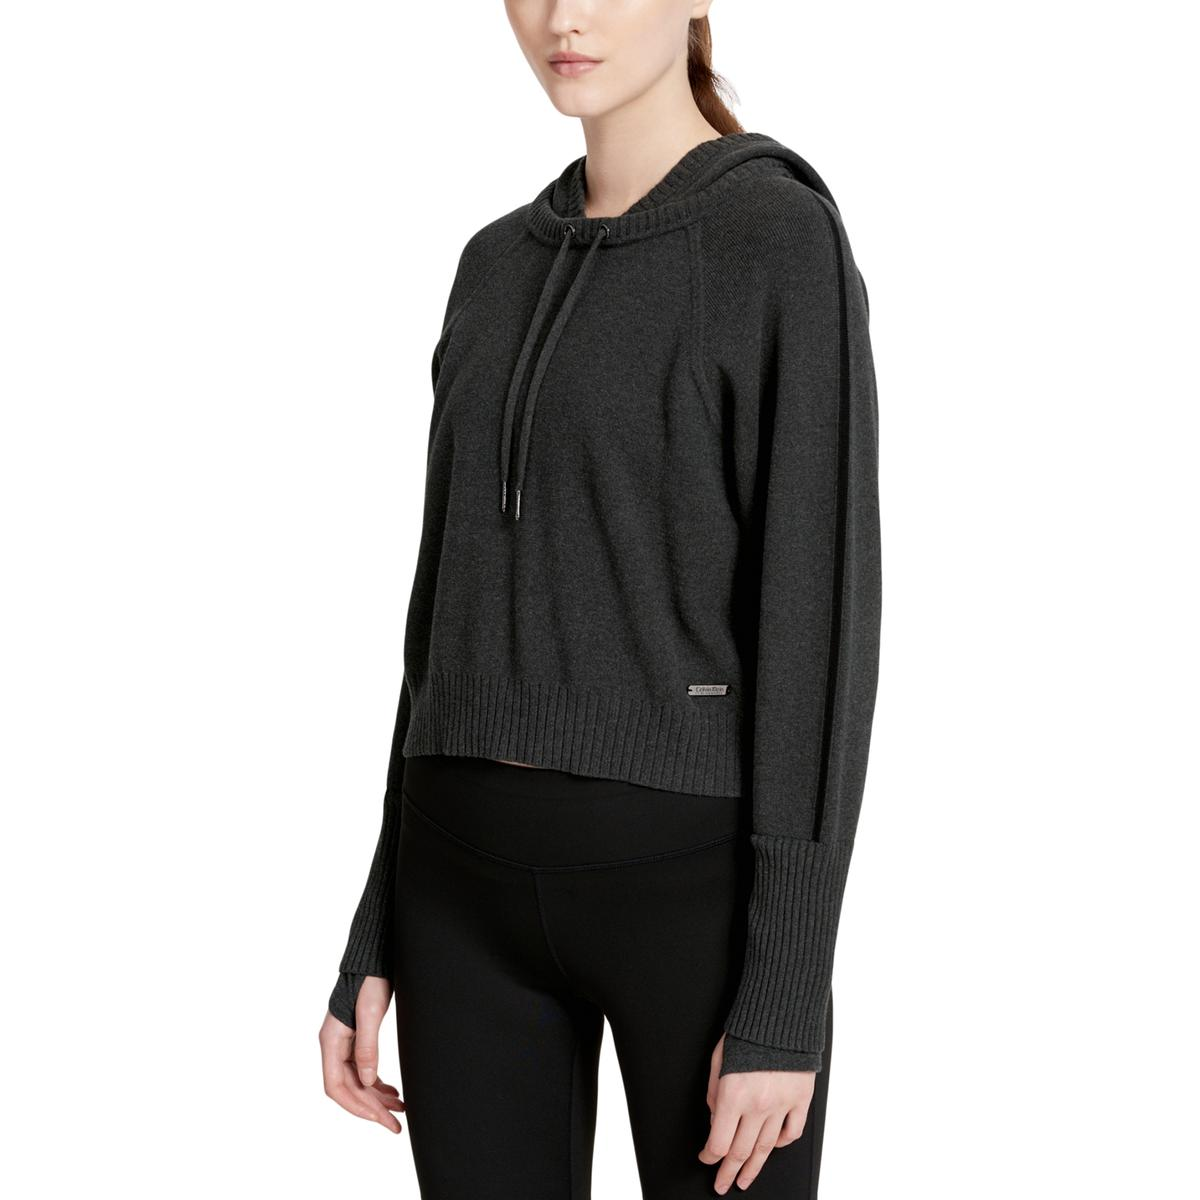 c1cde46d4b828 Calvin Klein Performance Womens Gray Cropped Sweater Hoodie Athletic ...